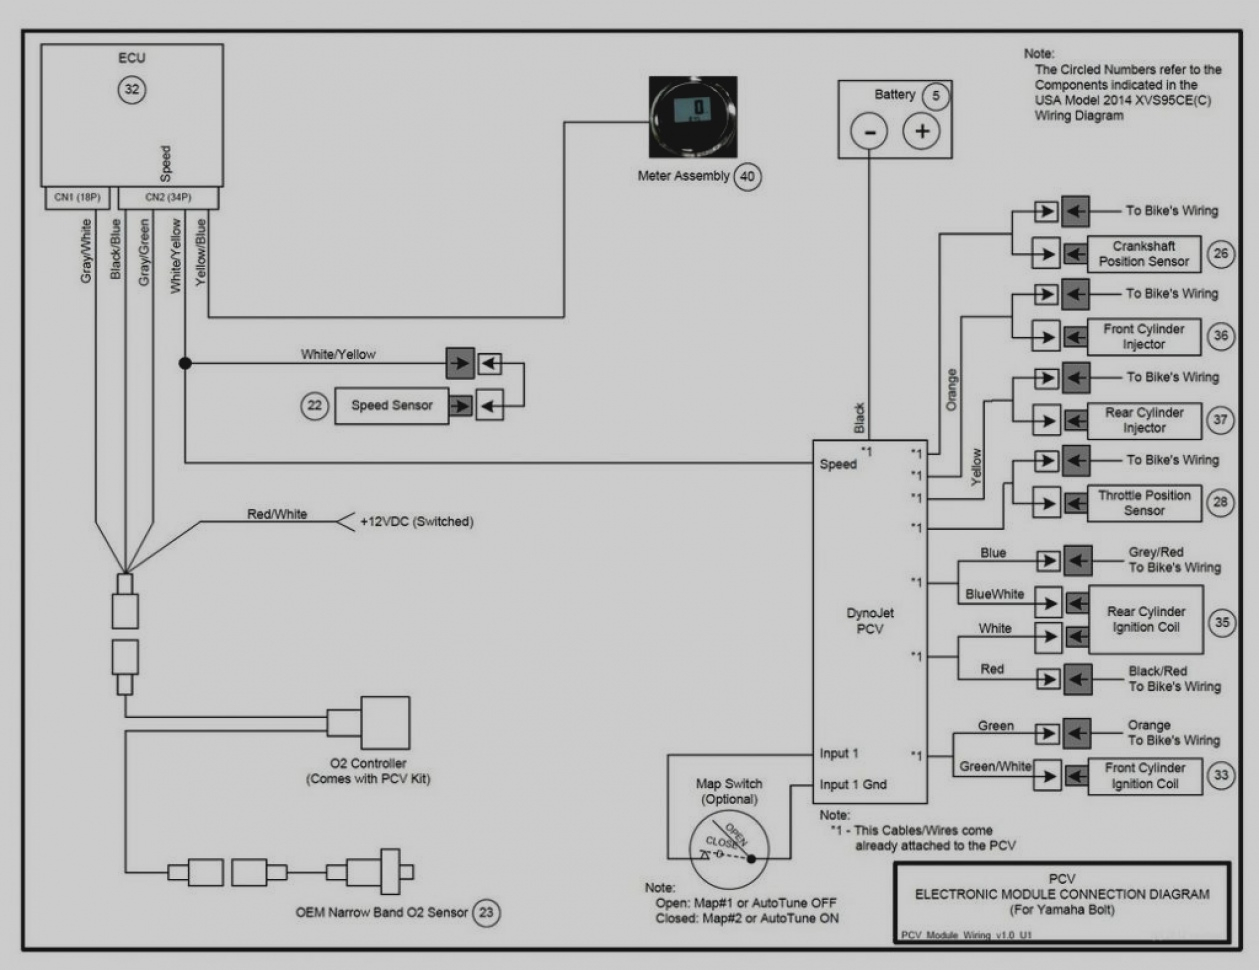 DIAGRAM> Dtv Genie Wiring Diagram FULL Version HD Quality Wiring Diagram -  EYEDIAGRAM.PAVIABAROCCA.ITeyediagram.paviabarocca.it